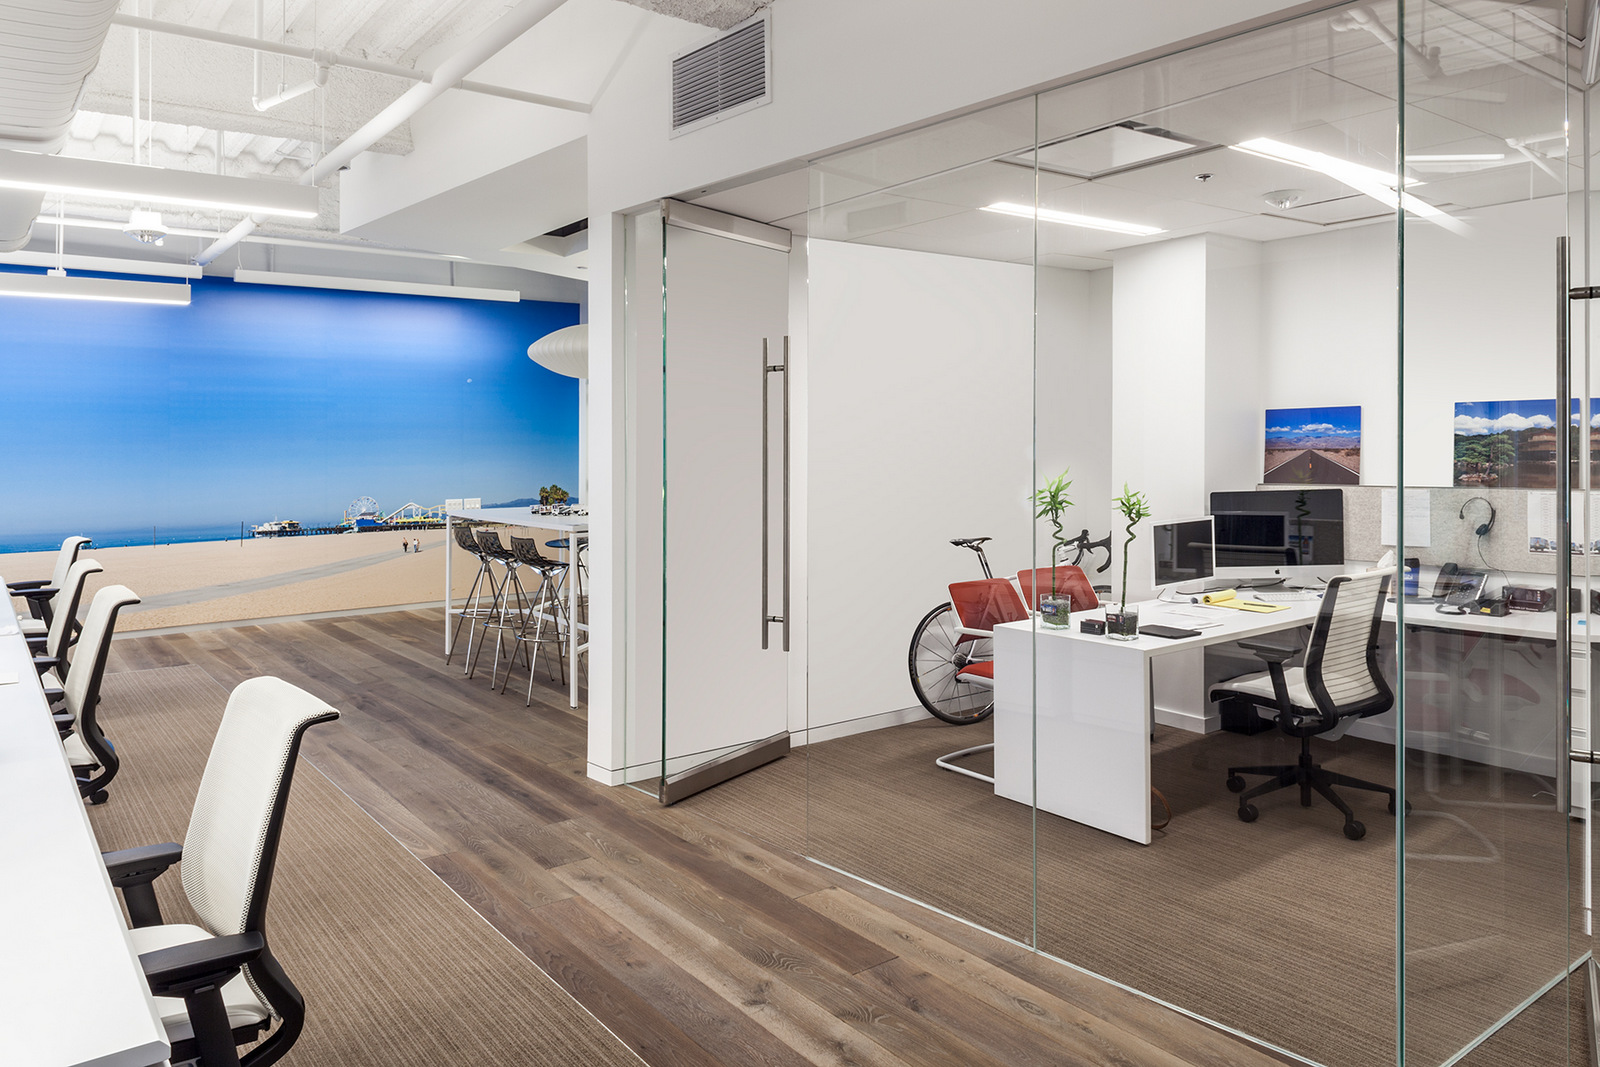 Groovy 19 Office Workspace Designs Decorating Ideas Design Trends Largest Home Design Picture Inspirations Pitcheantrous